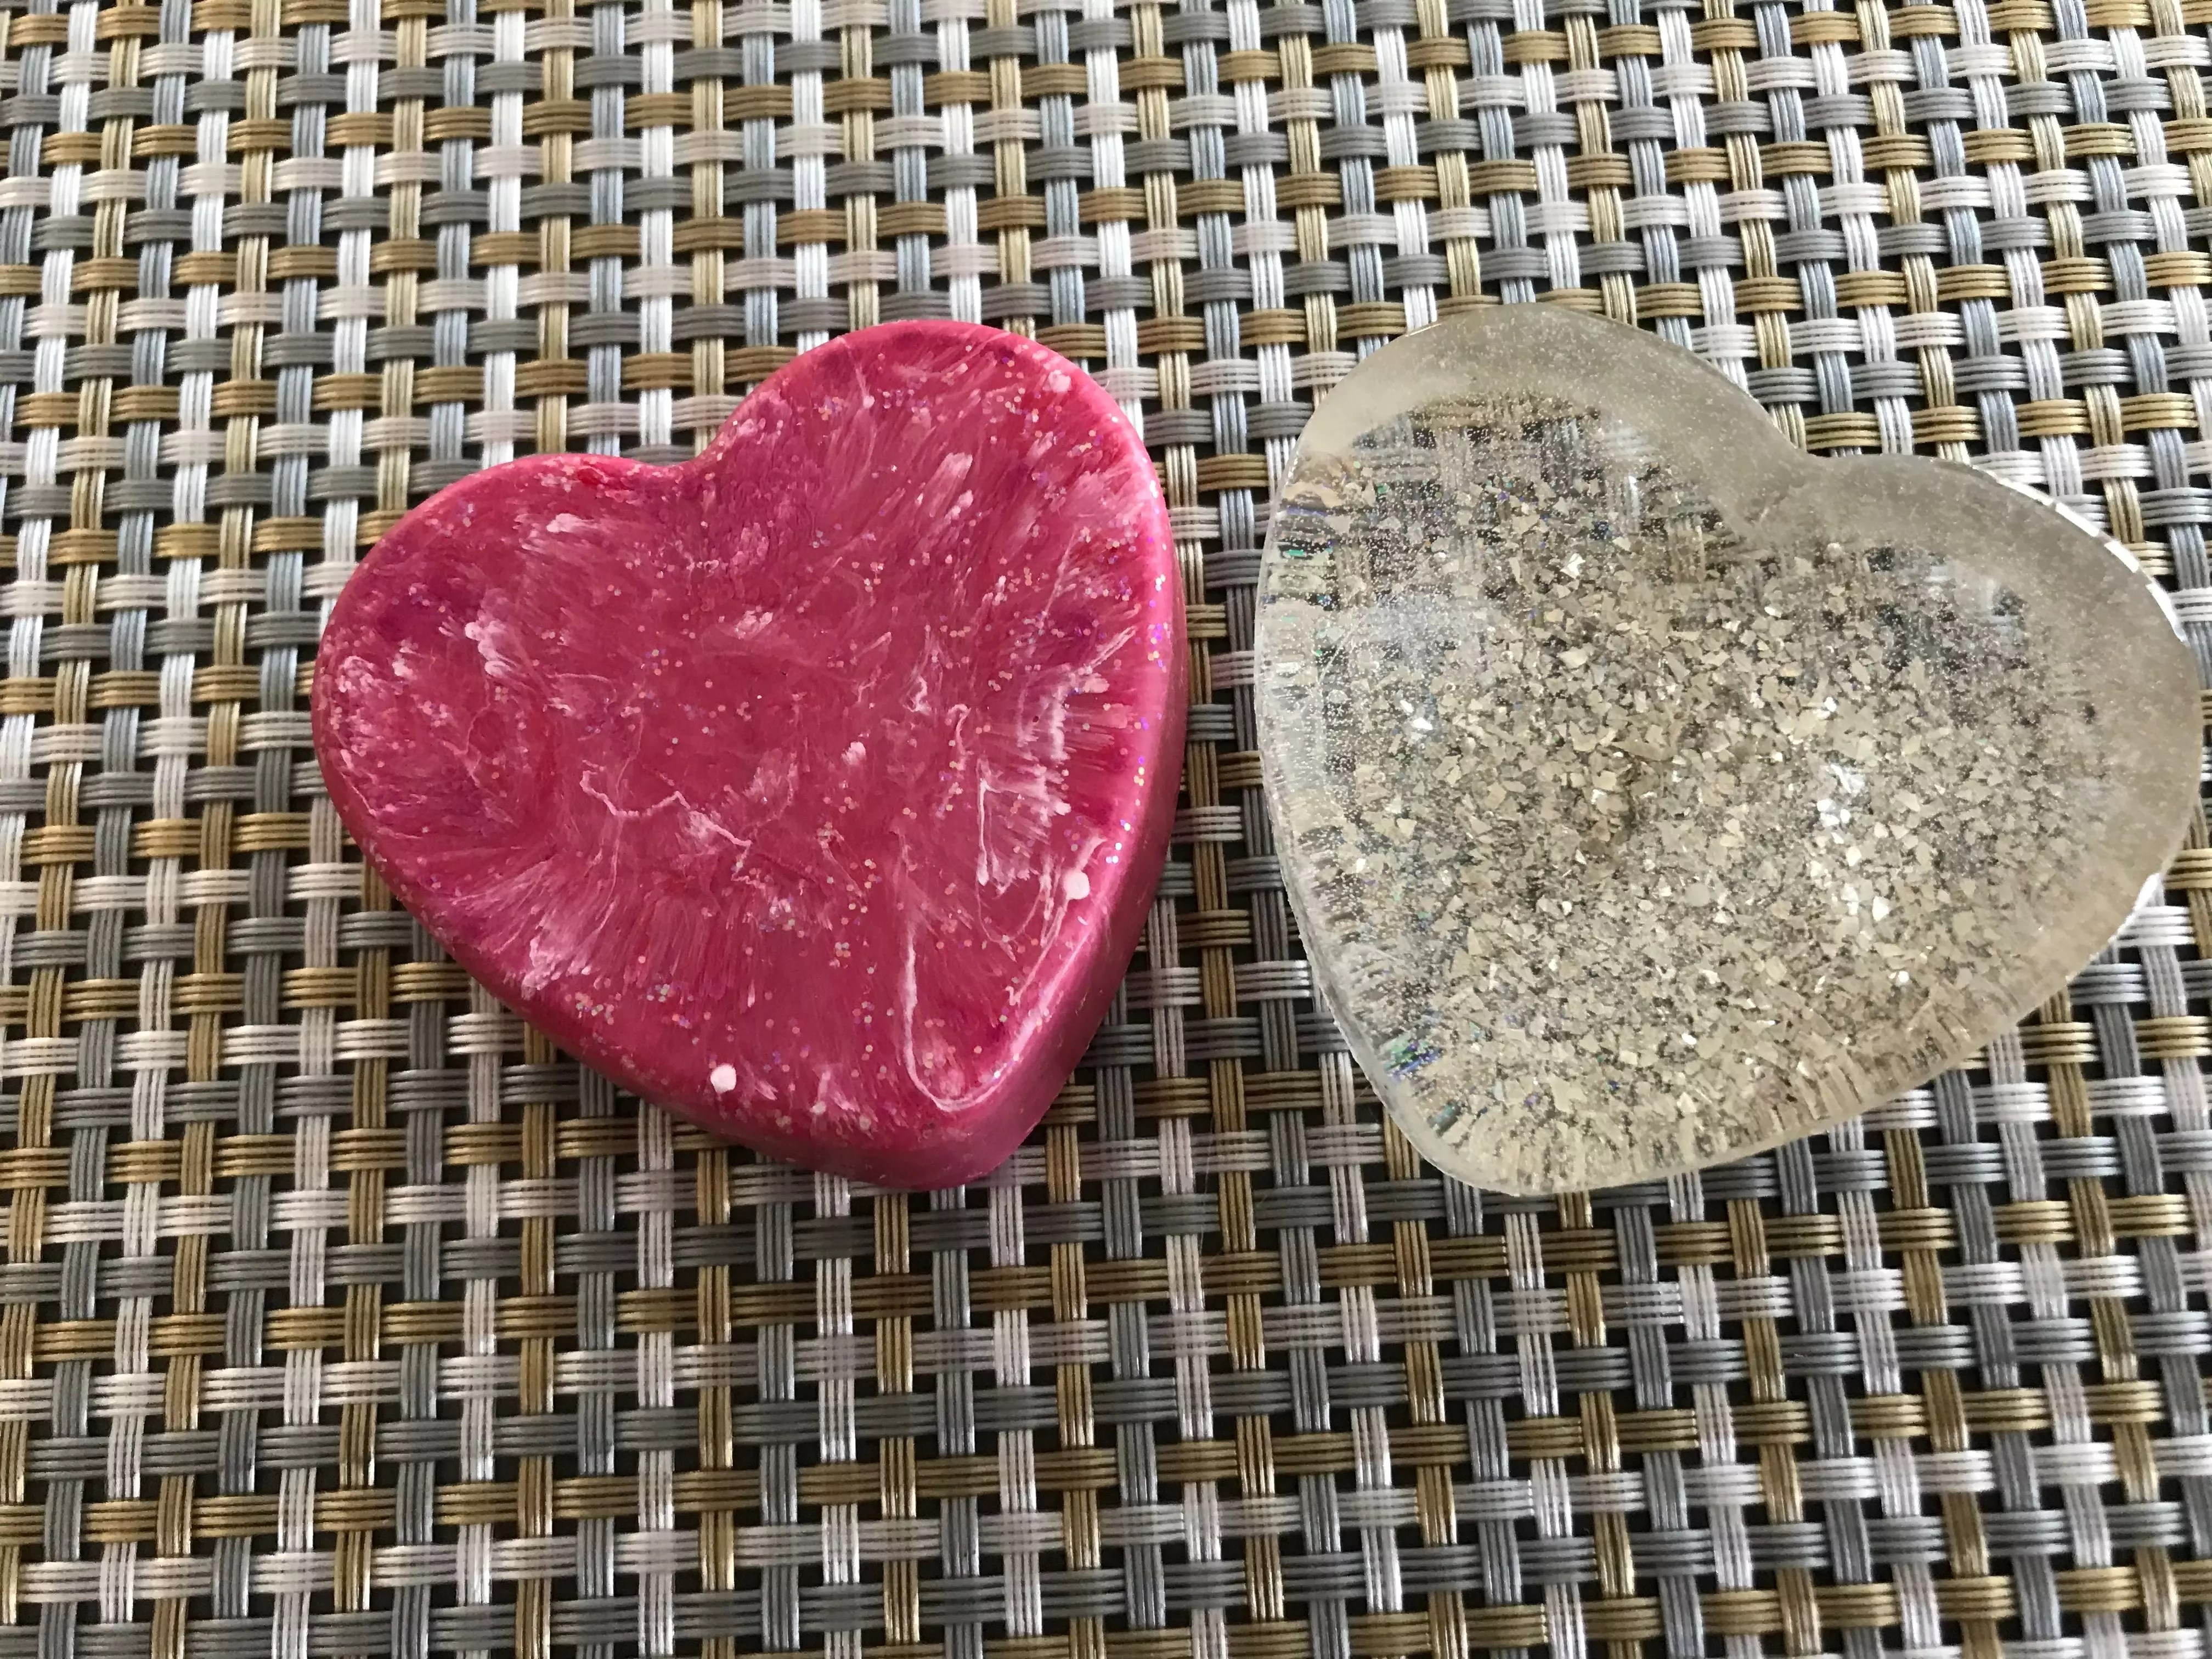 resin hearts for art projects